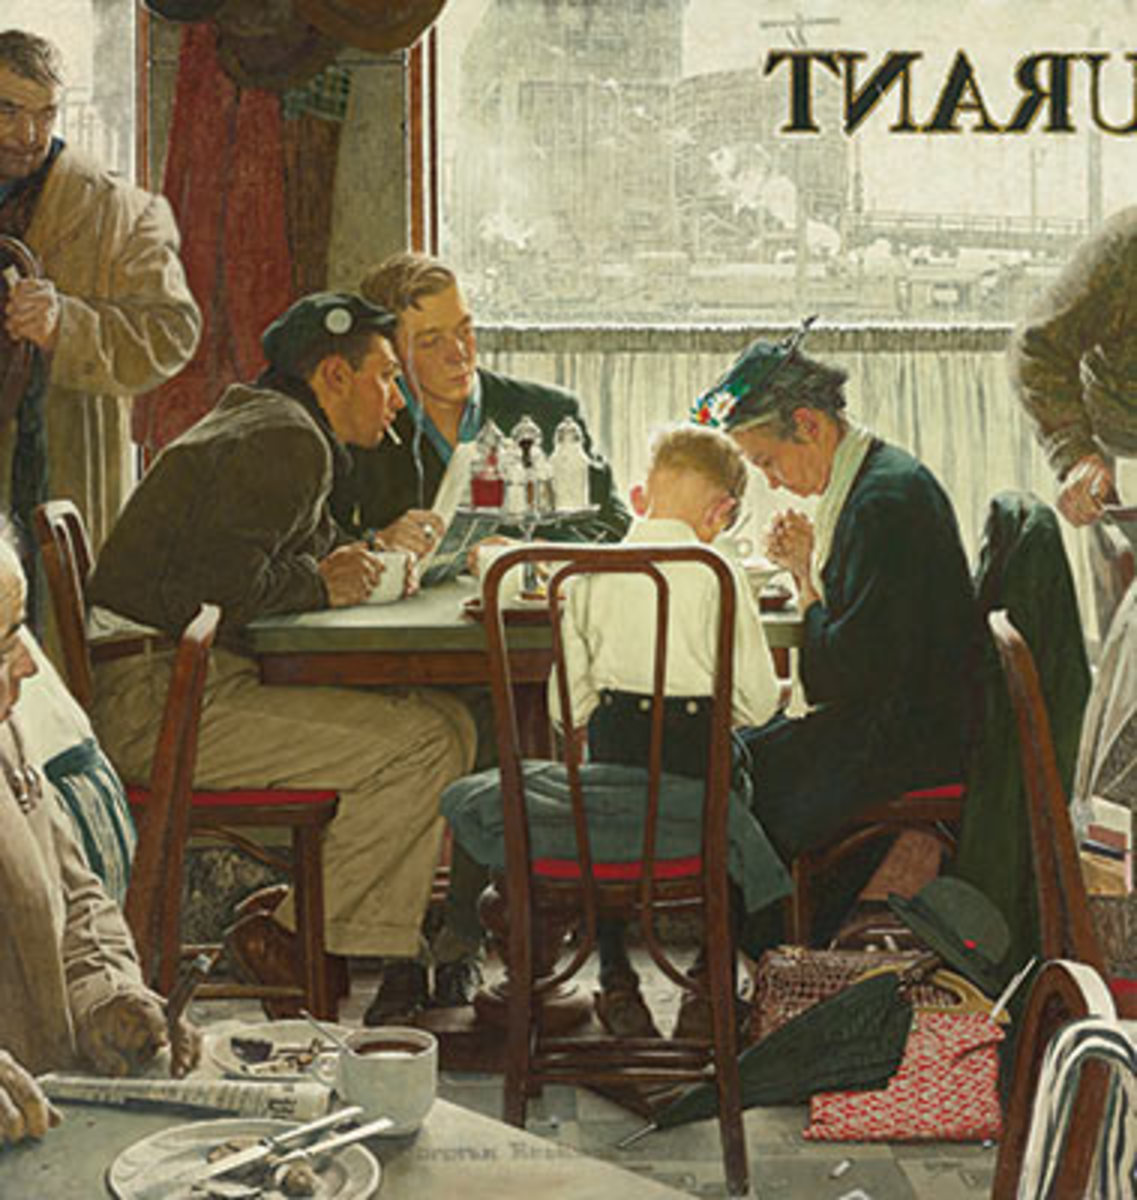 Appearing on the cover of the 1951 Thanksgiving issue of The Saturday Evening Post, Norman Rockwell's SAYING GRACE sold at Sotheby's for $46 million.